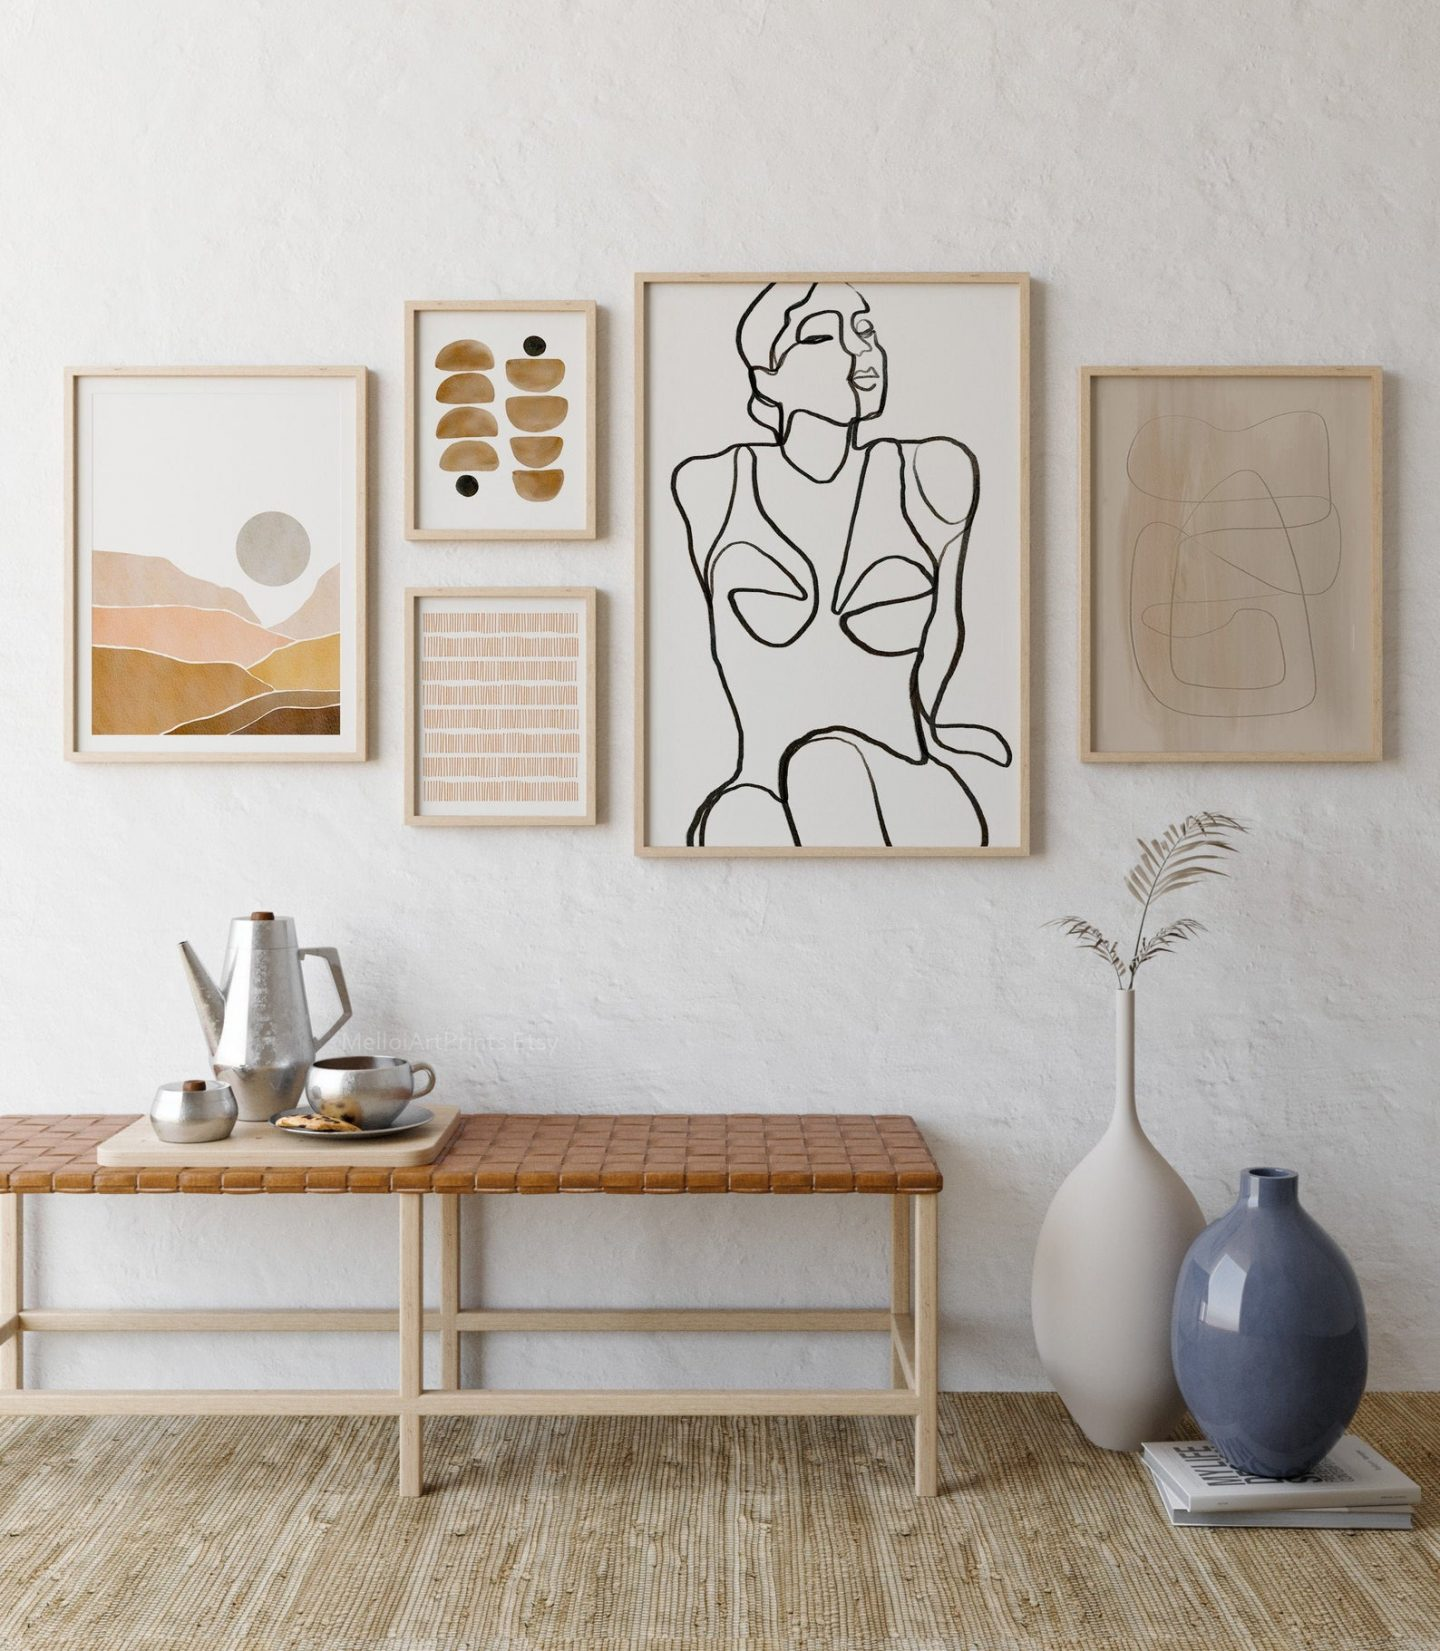 Nude and brown abstract wall decoration with female figures